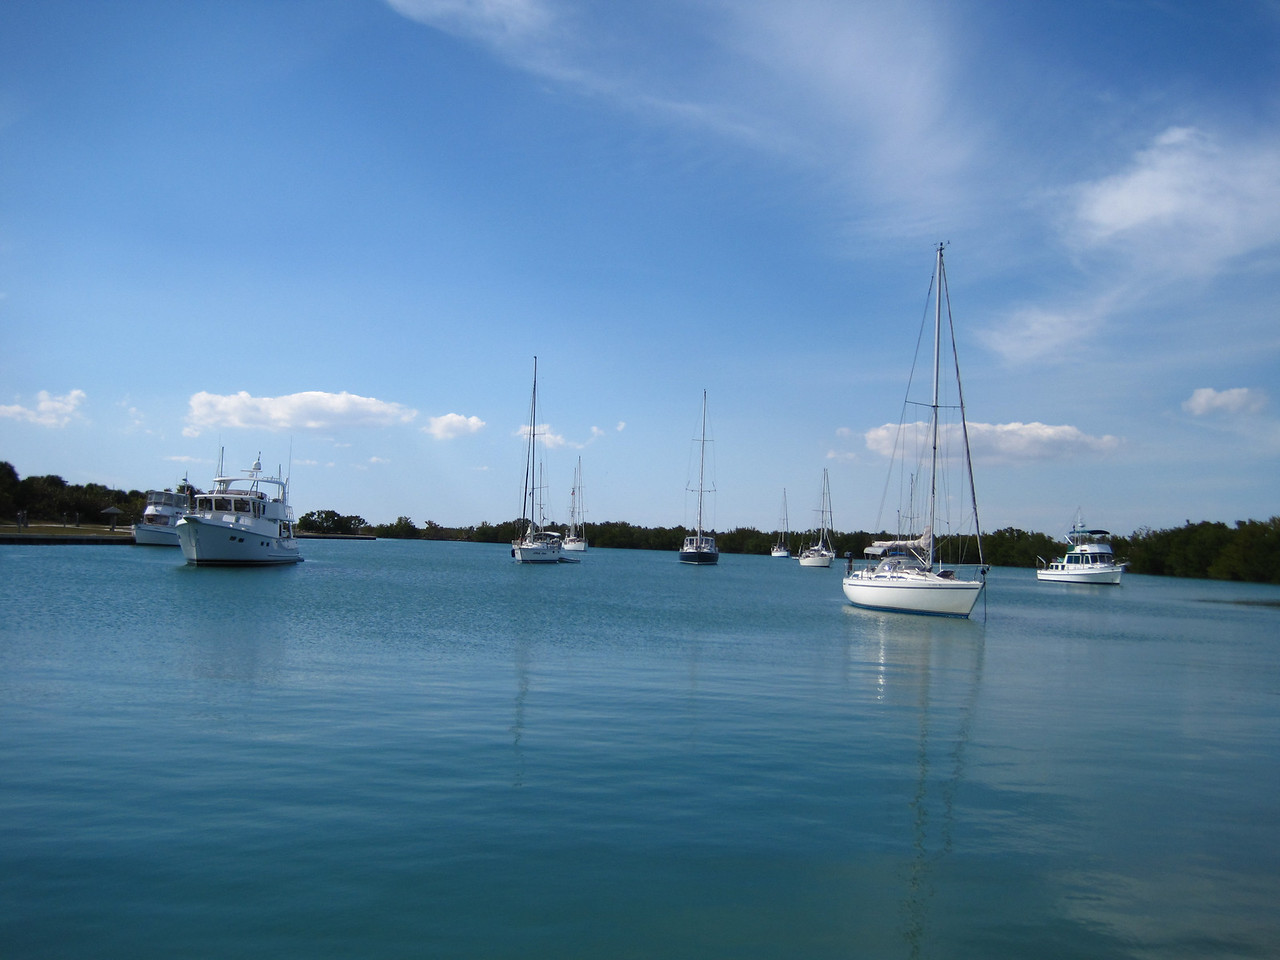 Looking out into this little harbor on Key Biscayne that provided shelter in bad weather.